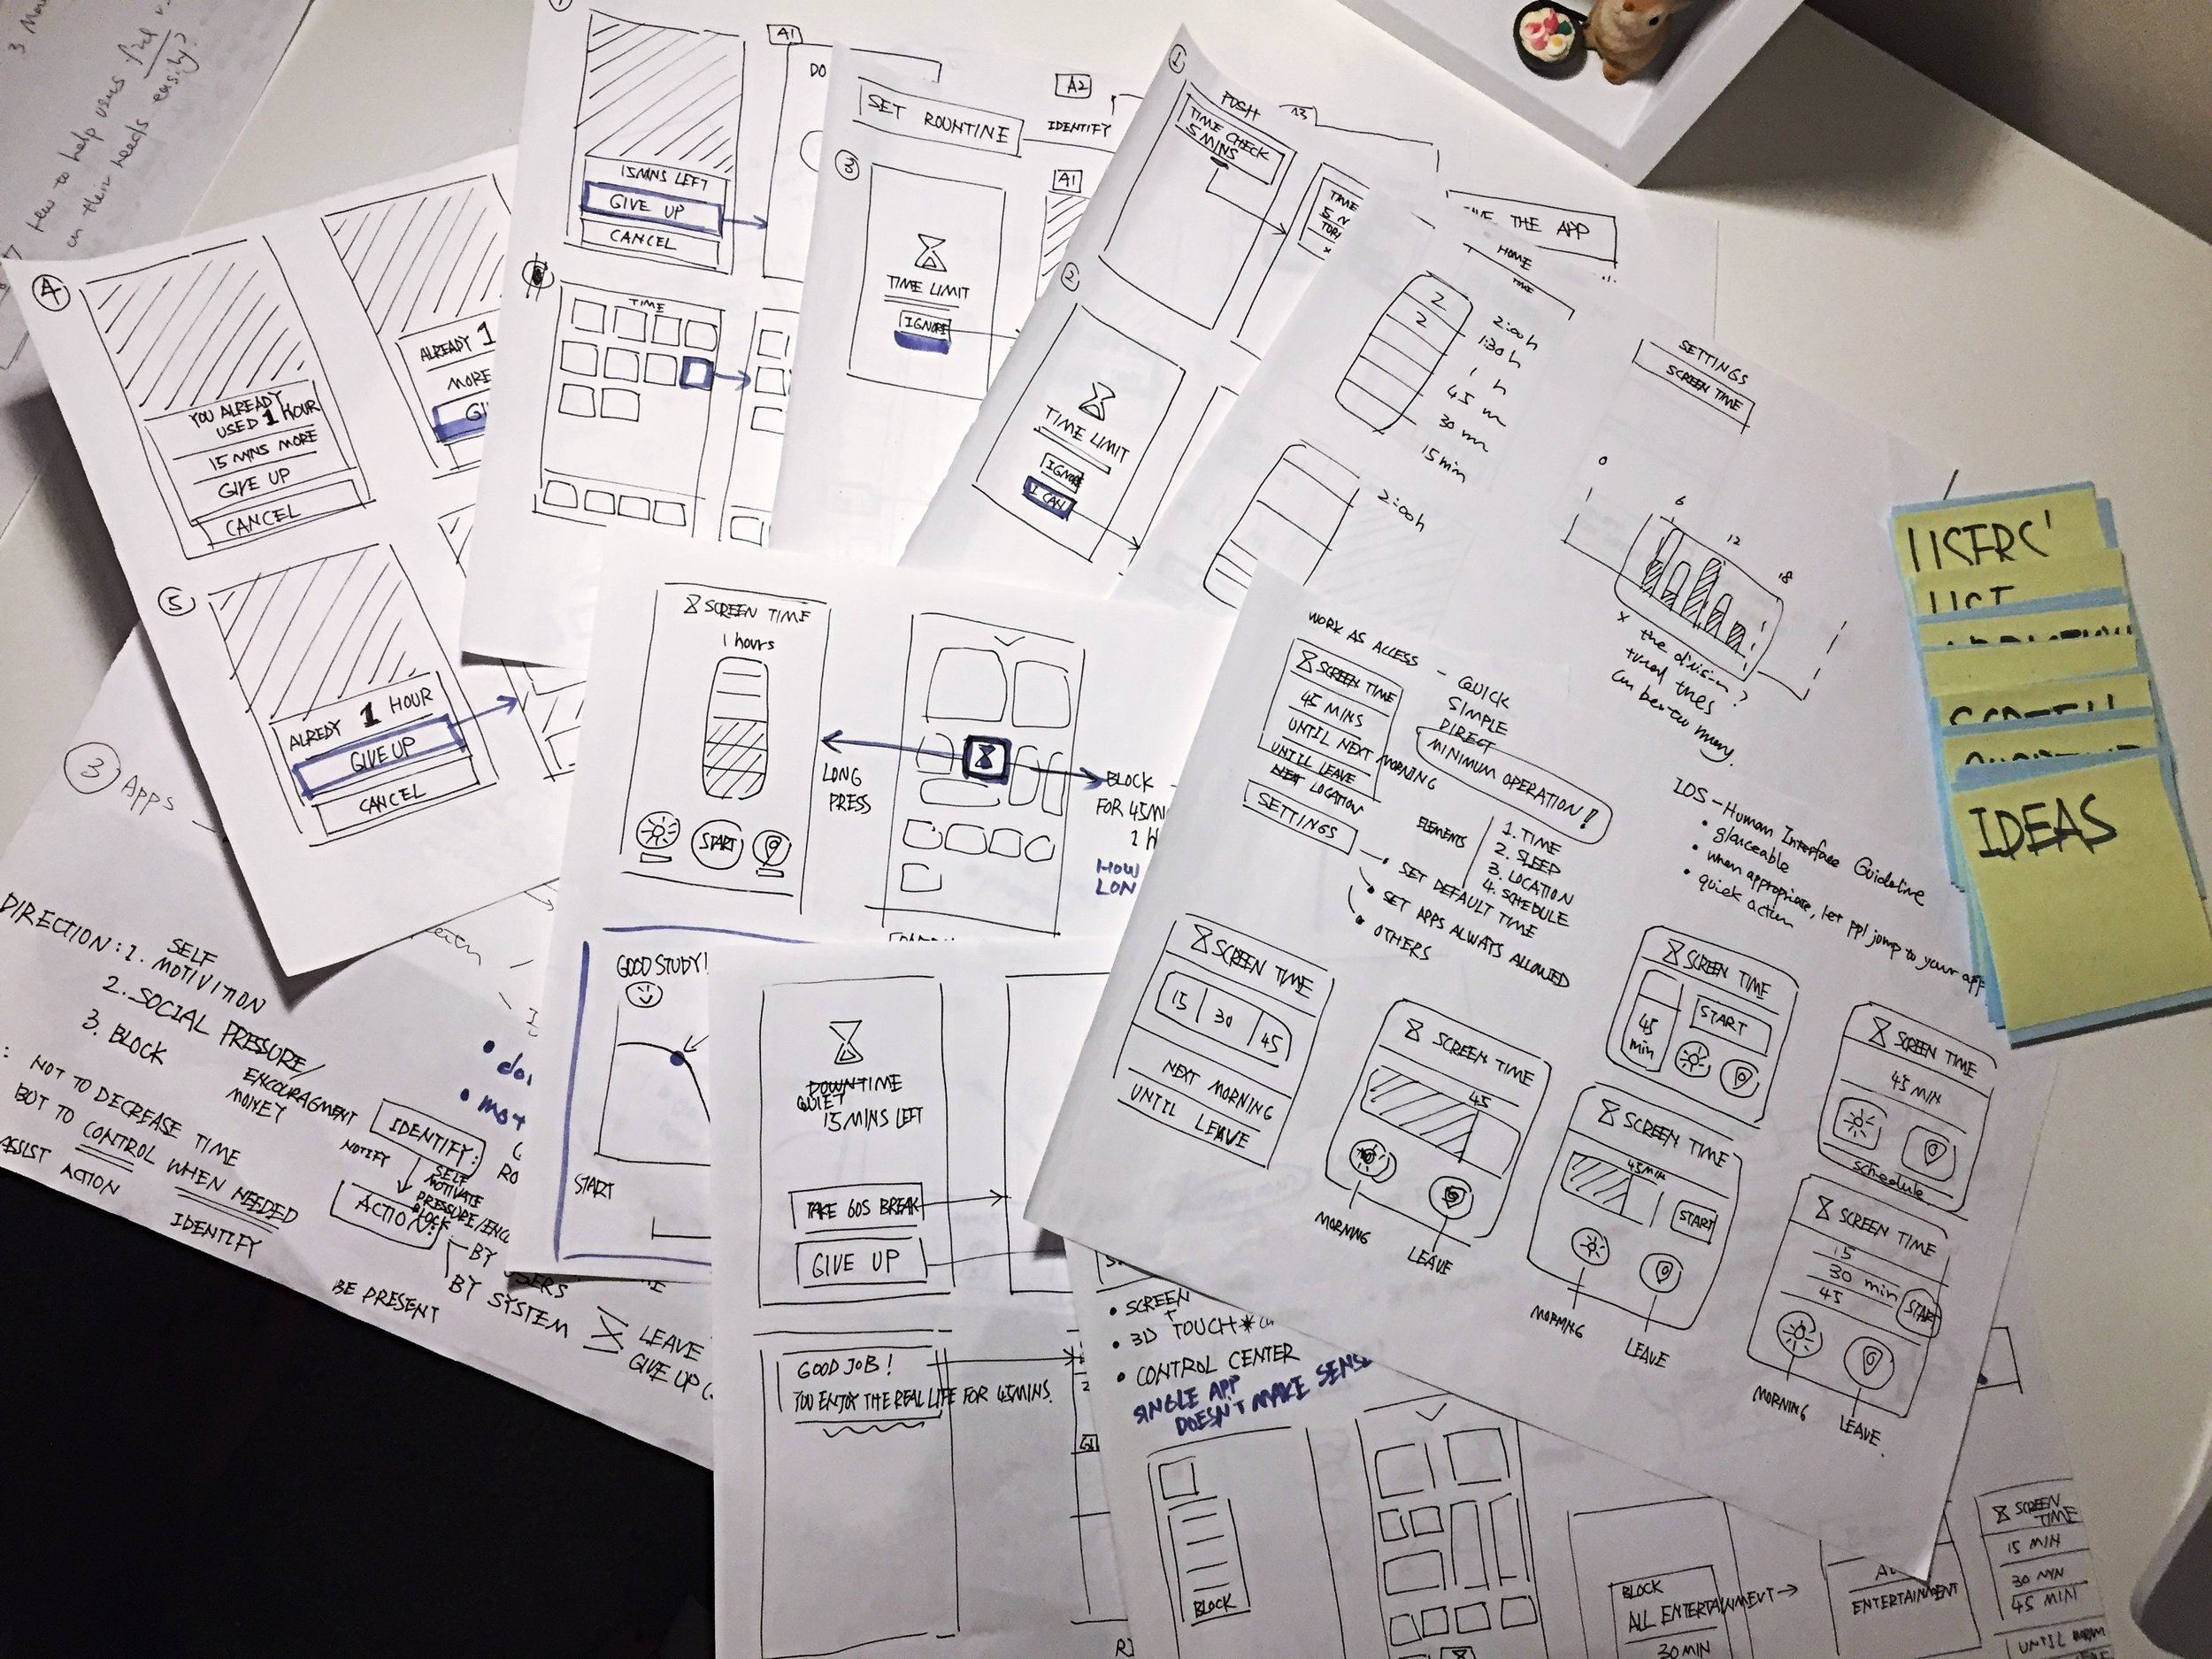 All the paper sketches during the design